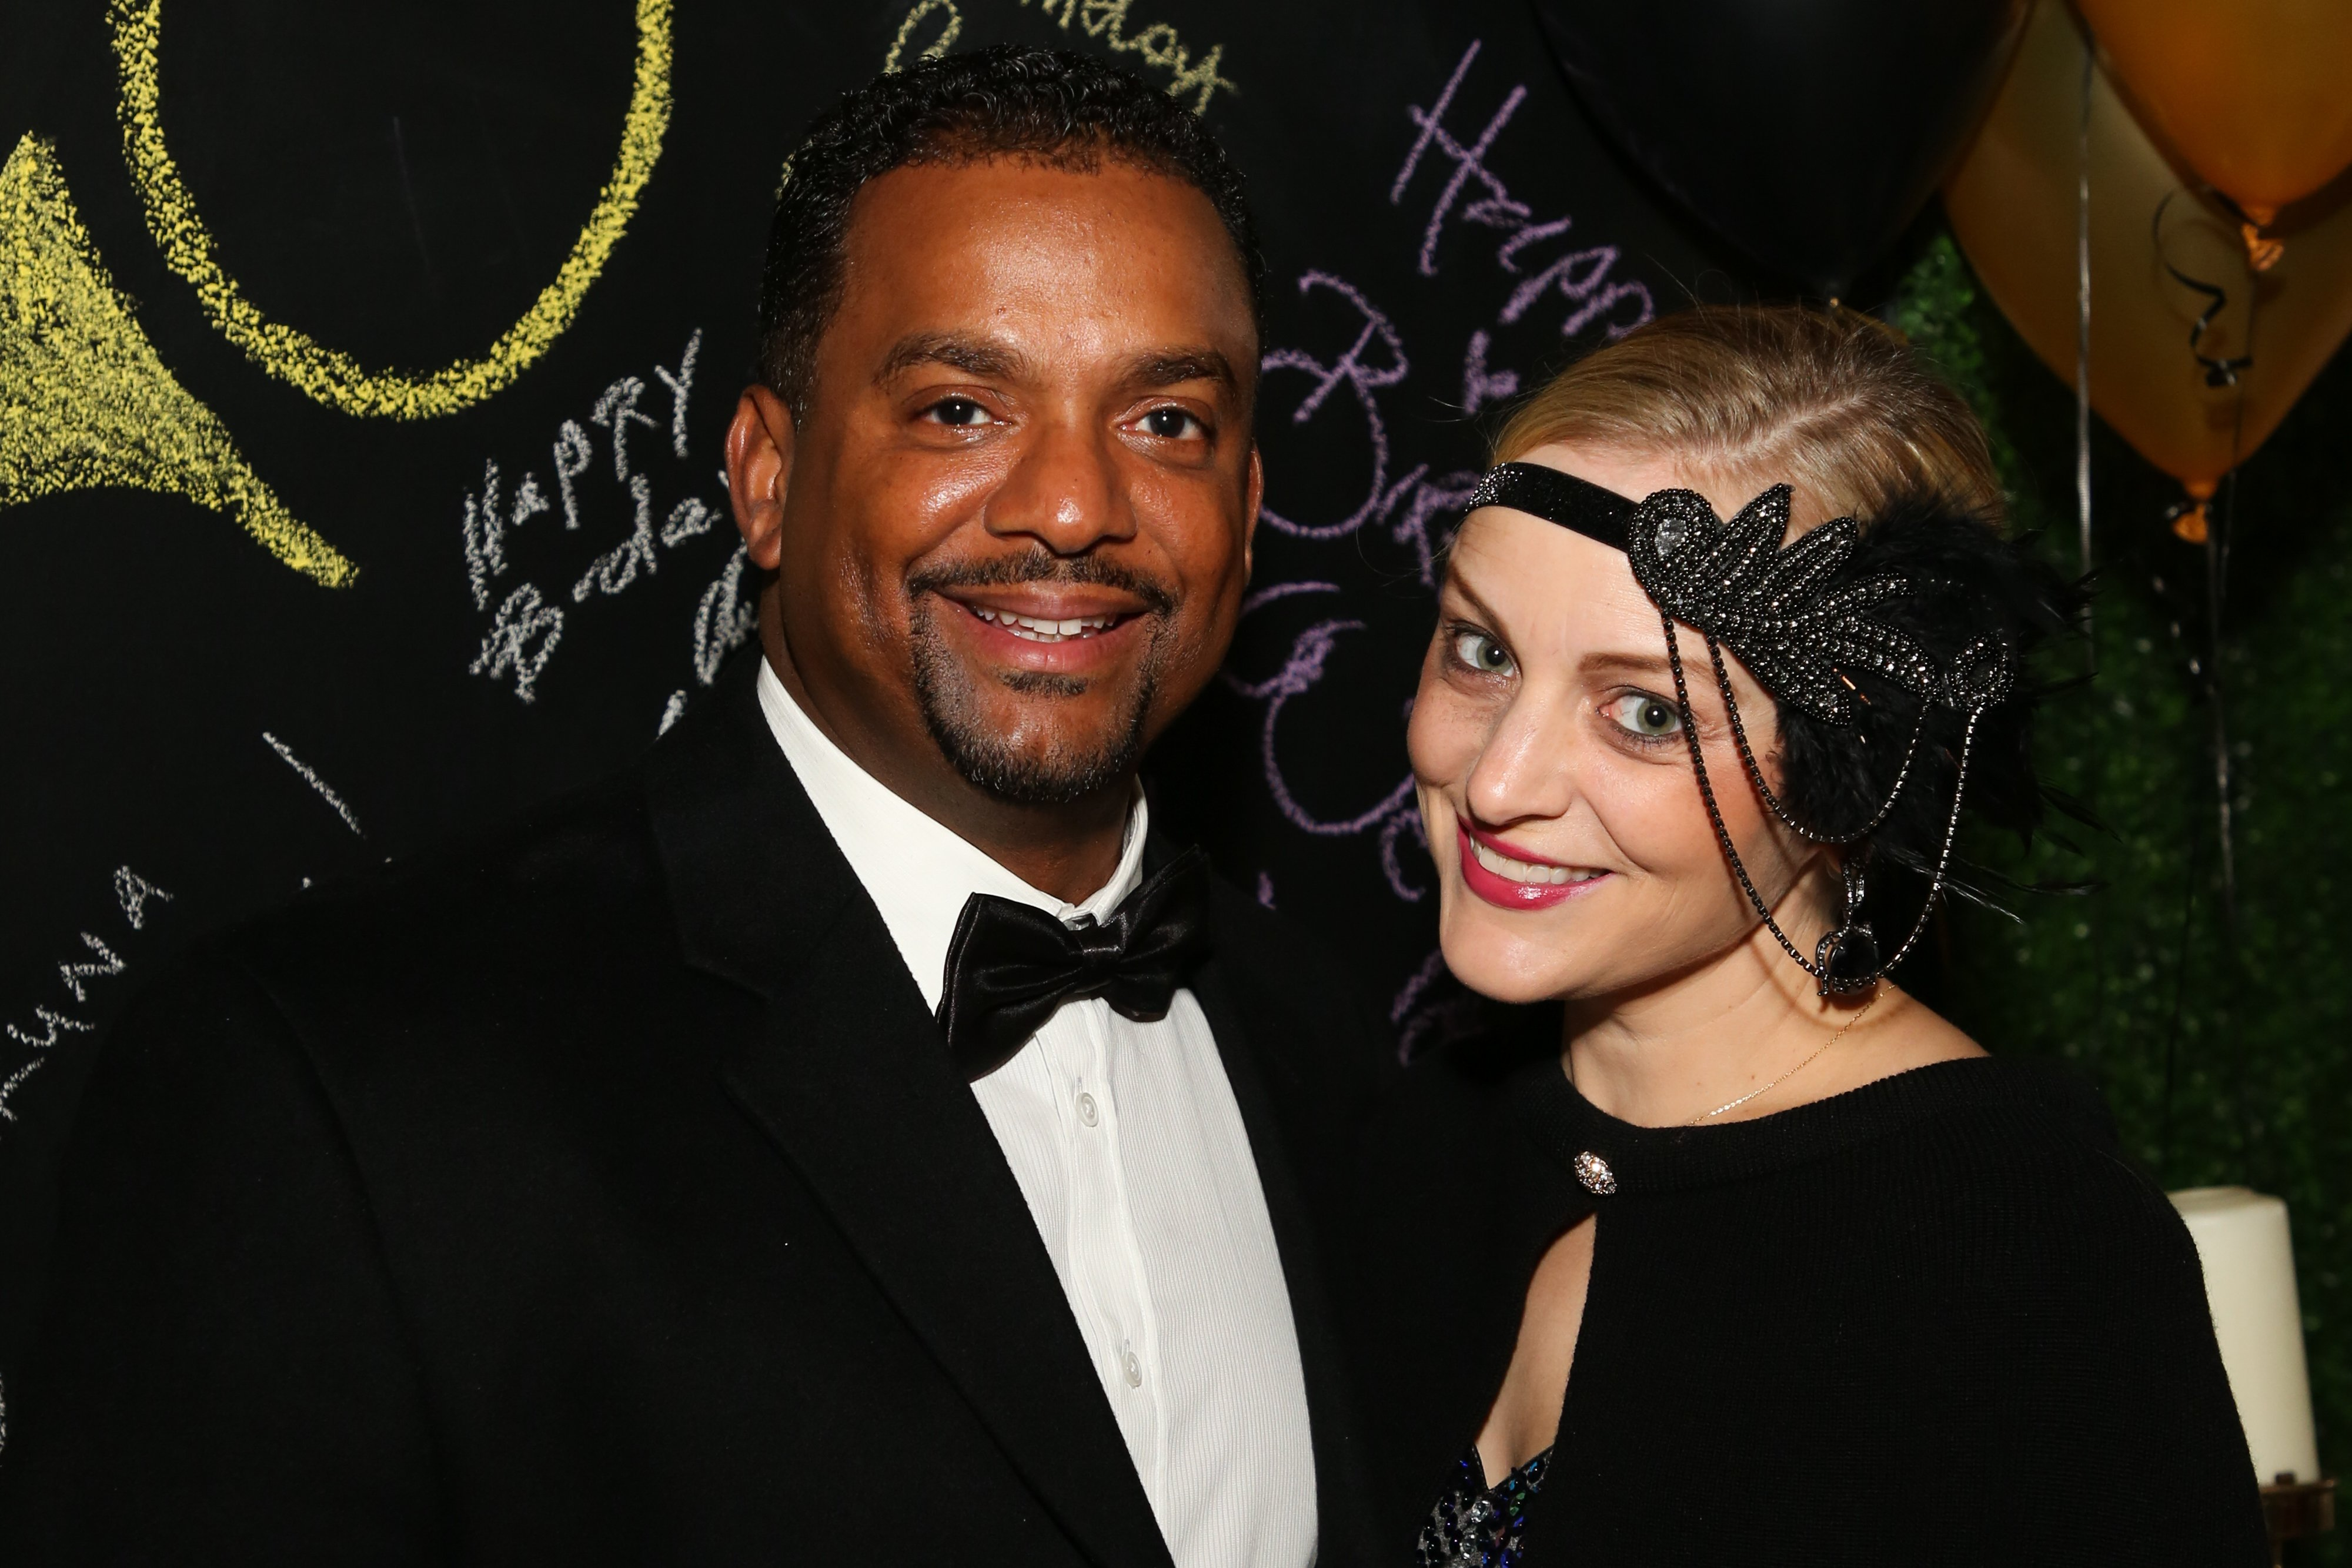 TV host Alfonso Ribeiro and his wife Angela Unkrich at Keo Motsepe's birthday party on November 30, 2019 in Los Angeles, California. | Photo: Getty Images